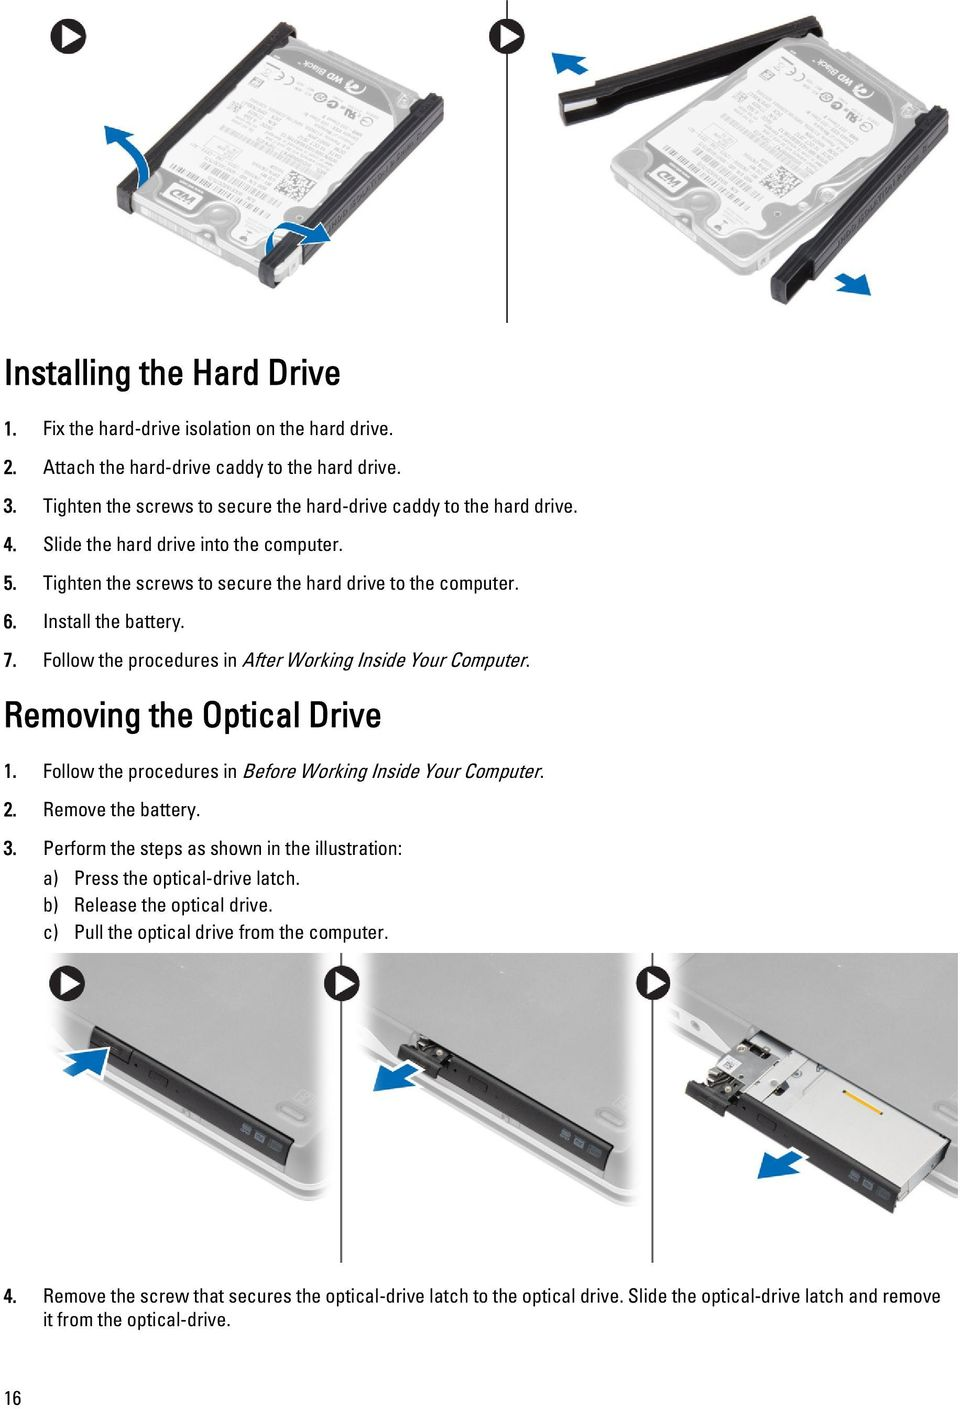 Removing the Optical Drive 1. Follow the procedures in Before Working Inside Your Computer. 2. Remove the battery. 3. Perform the steps as shown in the illustration: a) Press the optical-drive latch.